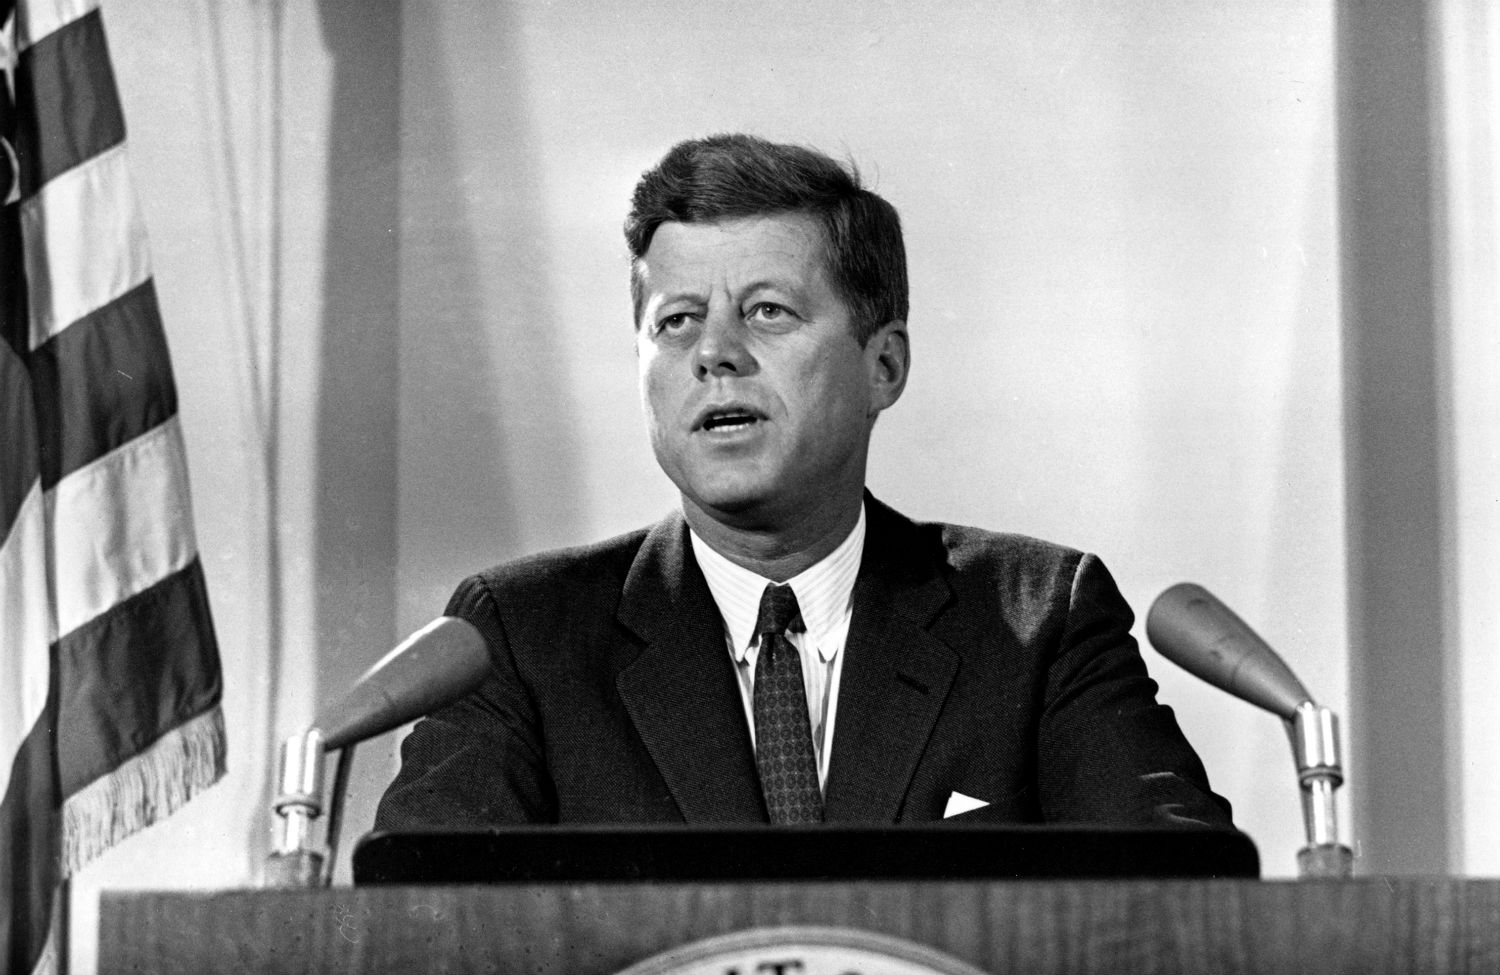 """jfk and the cuban missile crisis essay 177 review essay the cuban missile crisis fursenko, aleksandr, and timothy naftali """"one hell of a gamble"""": krushchev castro and kennedy, 1958- 1964: the secret history of the cuban missile crisis new york: ww norton, 1997 stern, sheldon m averting 'the final failure': john f kennedy and the secret."""